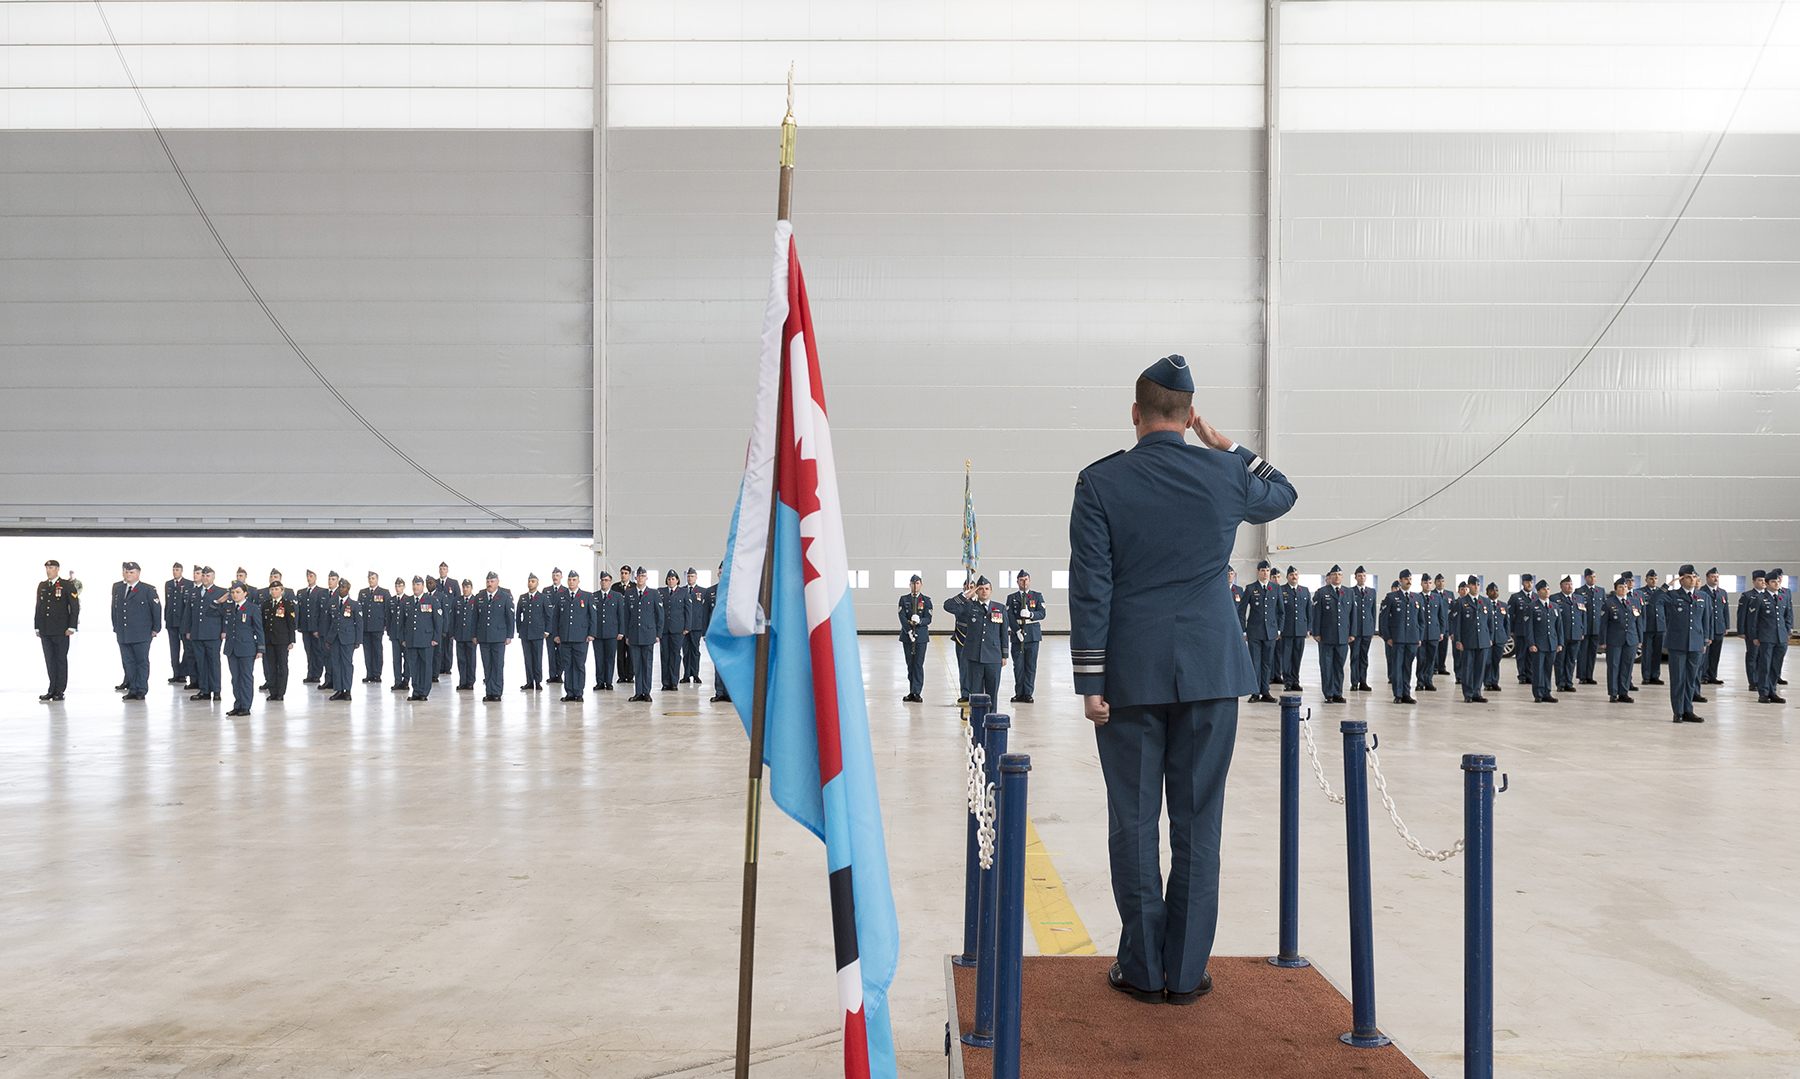 On November 7, 2017, Royal Canadian Air Force commander Lieutenant-General Michael Hood (foreground) returns a salute from members of 429 Transport Squadron during the squadron's 75th anniversary parade. PHOTO: Ordinary Seaman Paul Green, TN05-2017-0661-036